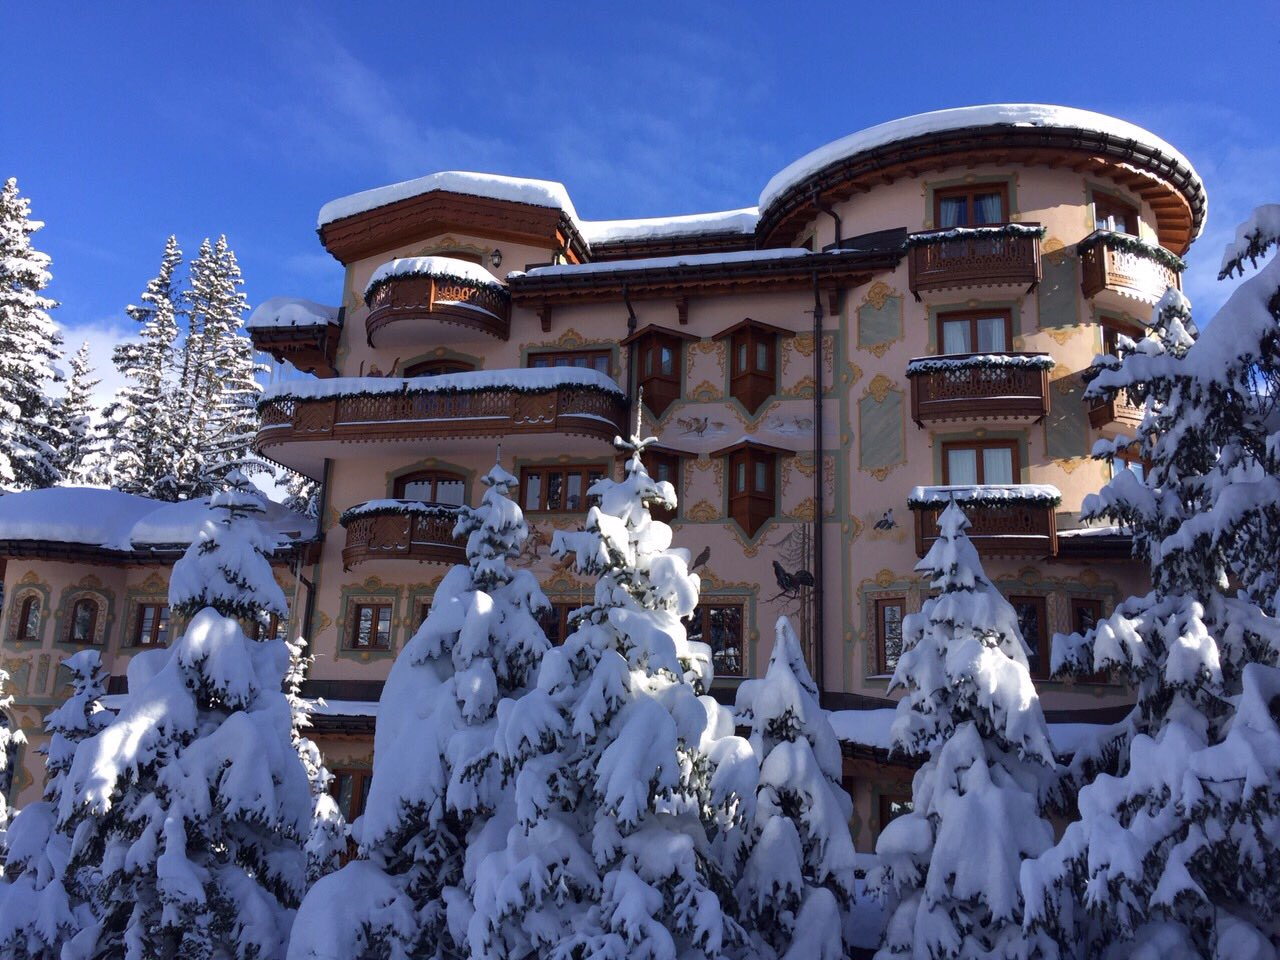 Hotel in Courchevel on the slope